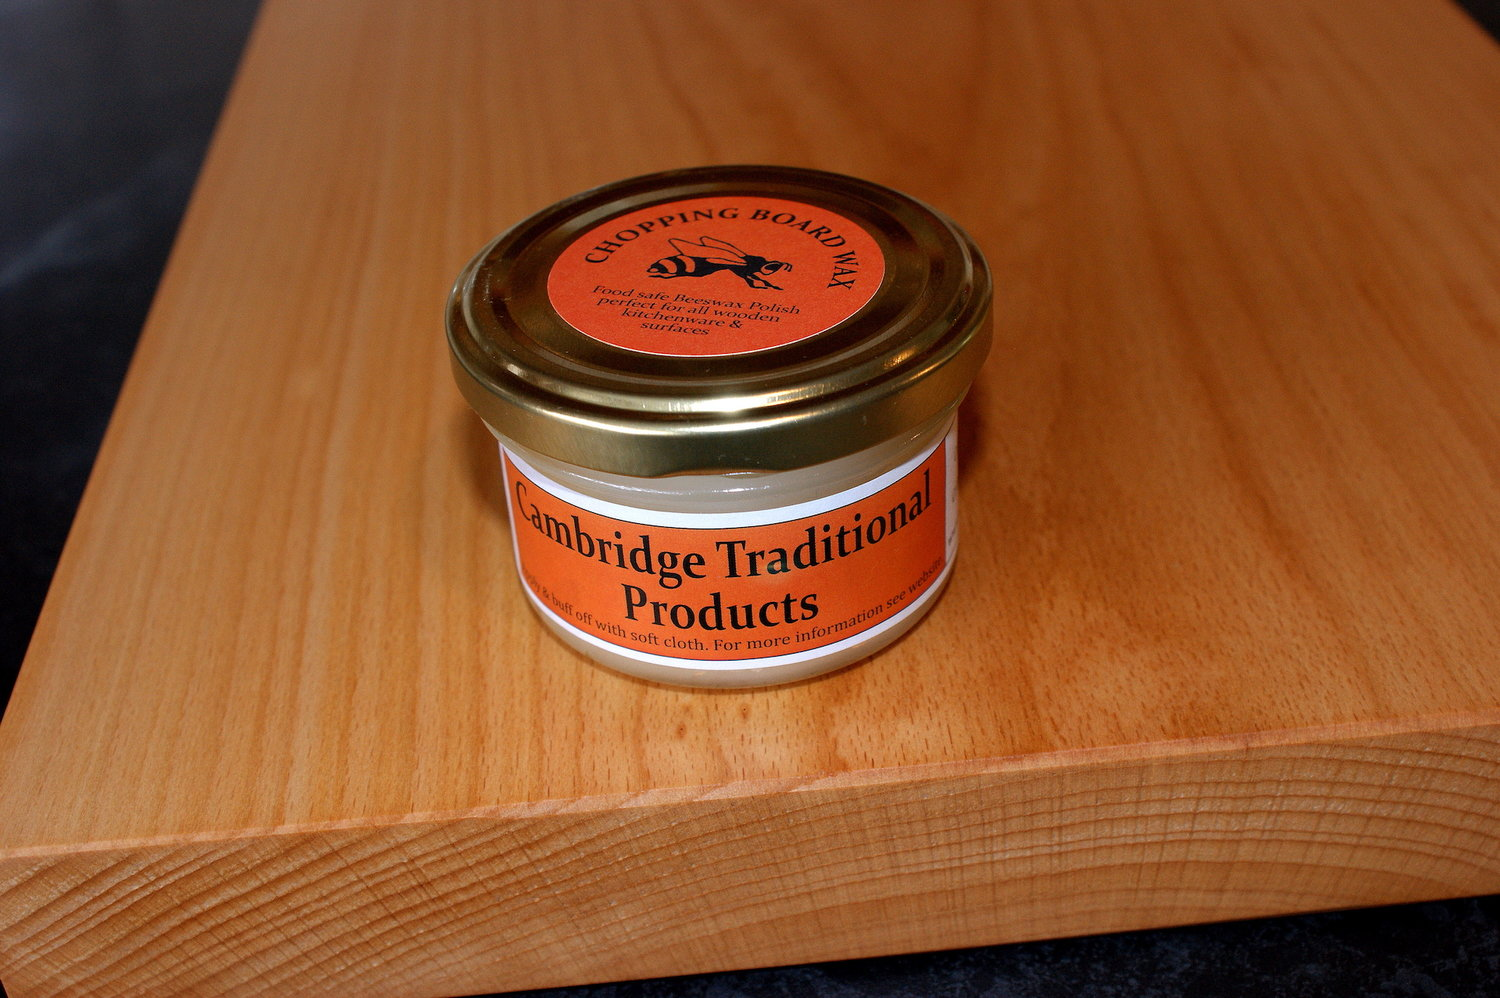 Chopping Board Wax Cambridge Traditional Products